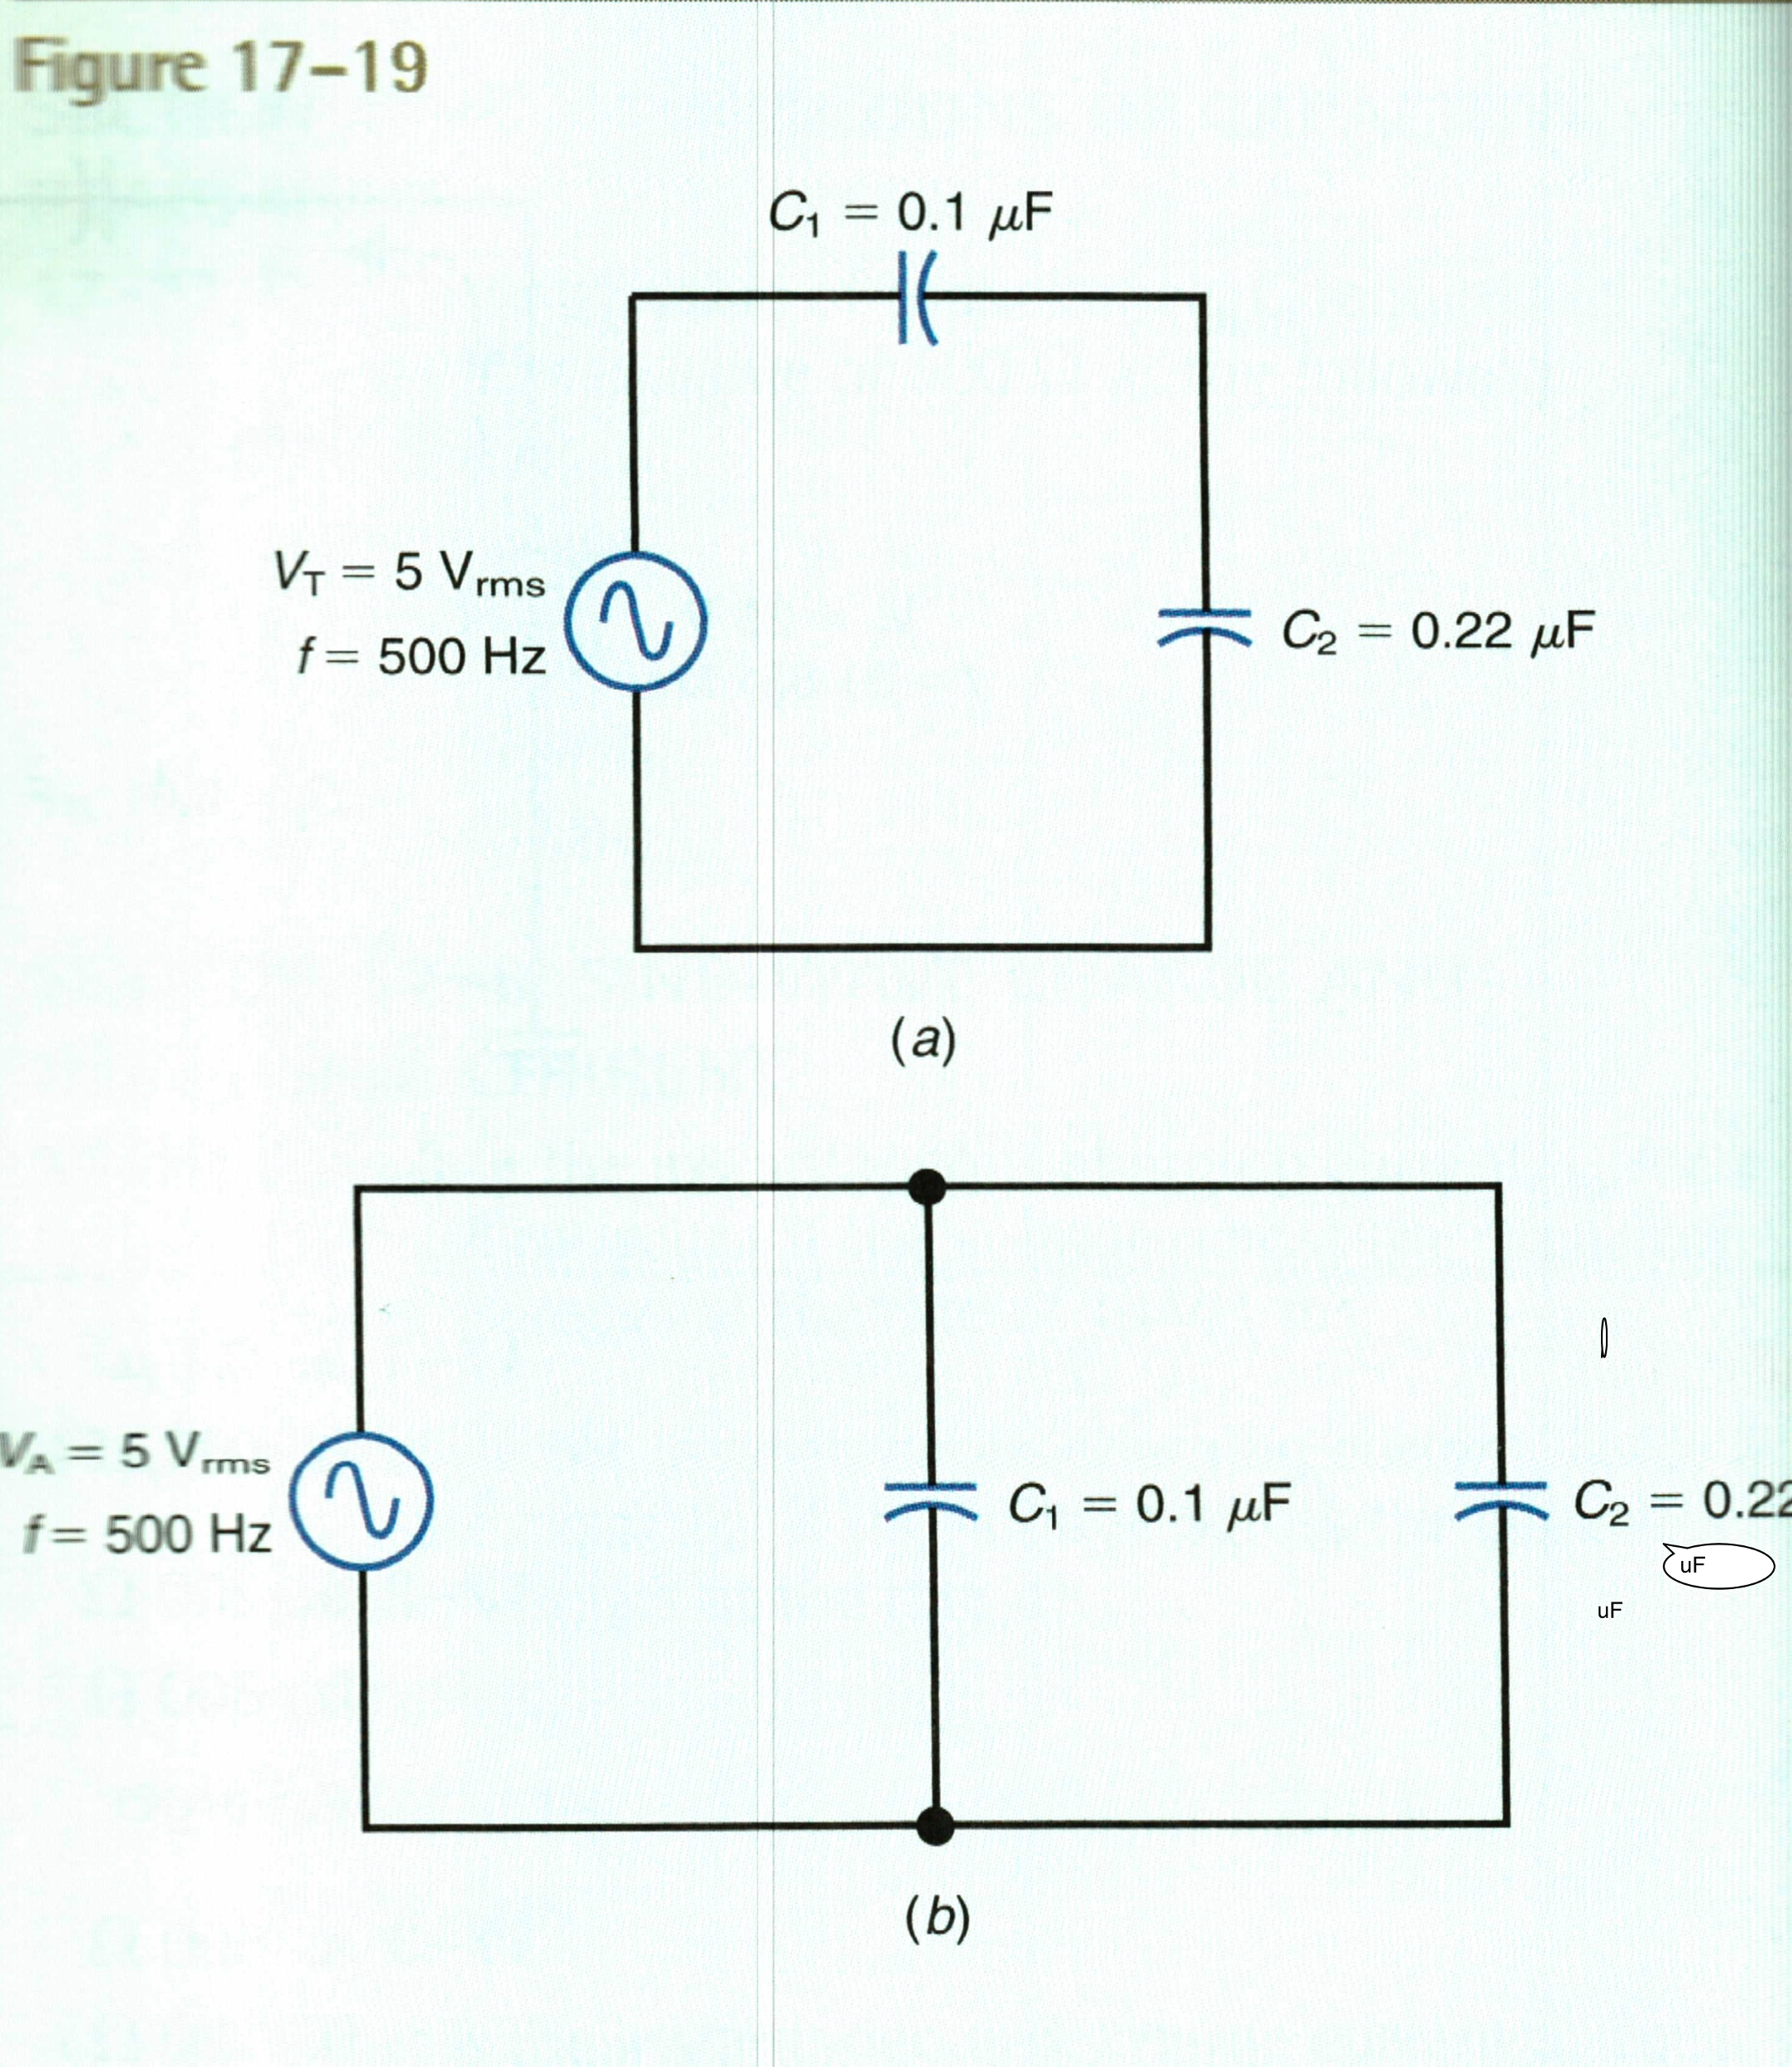 Refer to the circuit in Fig 17-19a Calculate and r